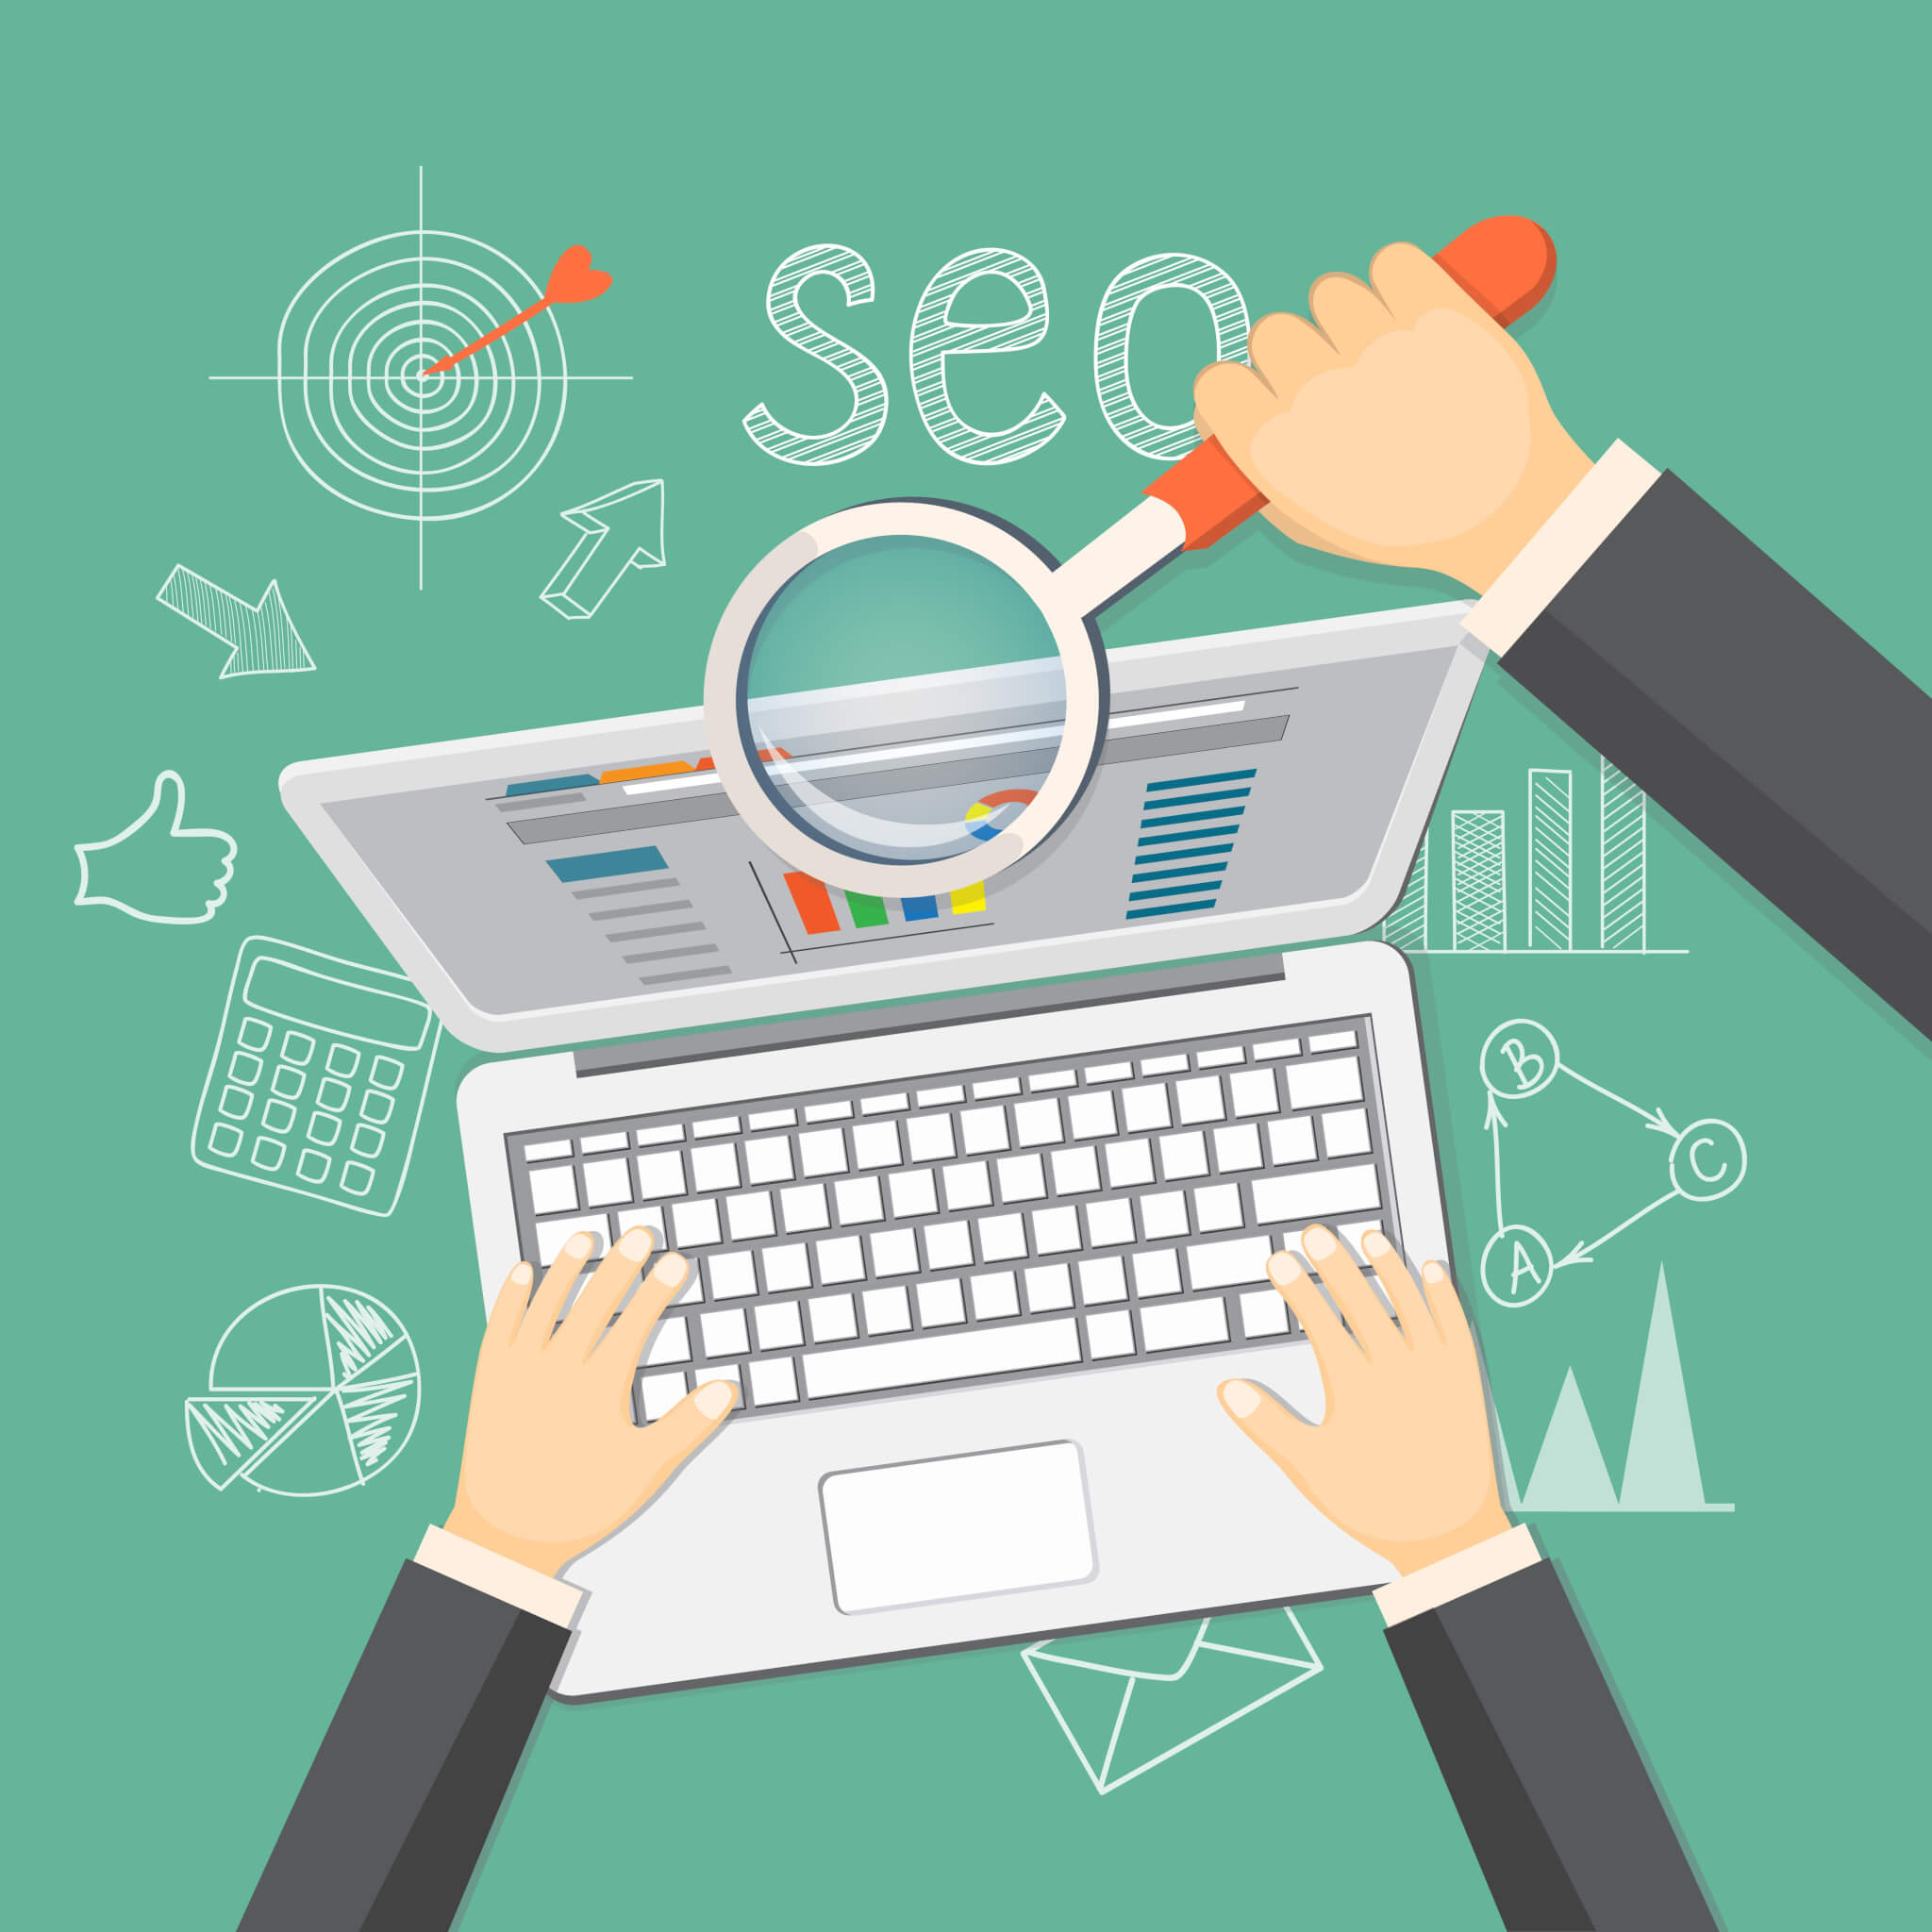 Hands looking at website SEO to rank higher